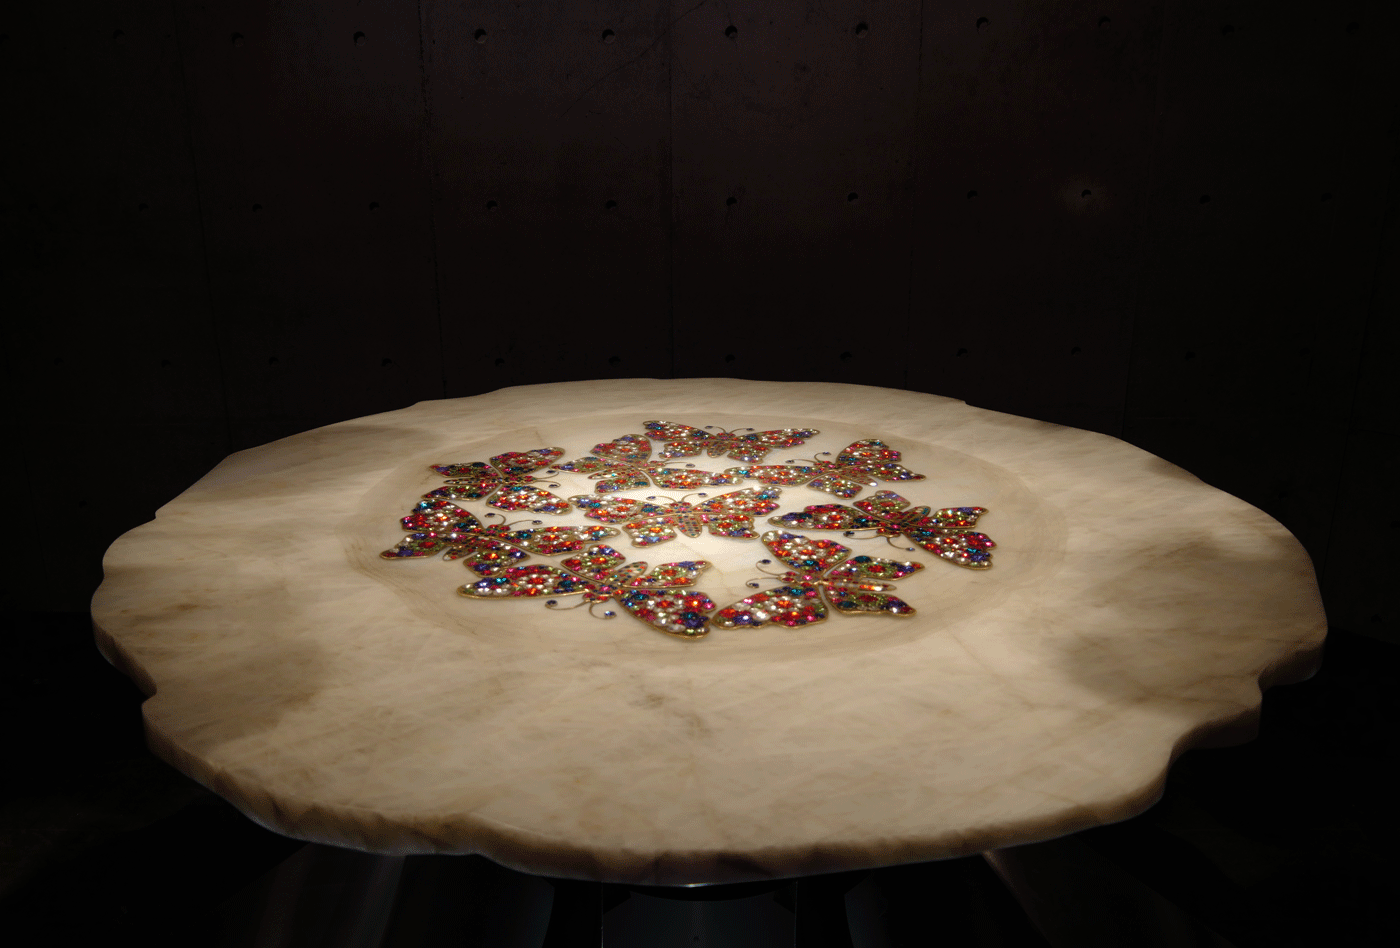 COLLEZIONE DI FARFALLE, rock crystal table with swarovsky butterflies - baldi home jewels, salone del mobile 2019, milano